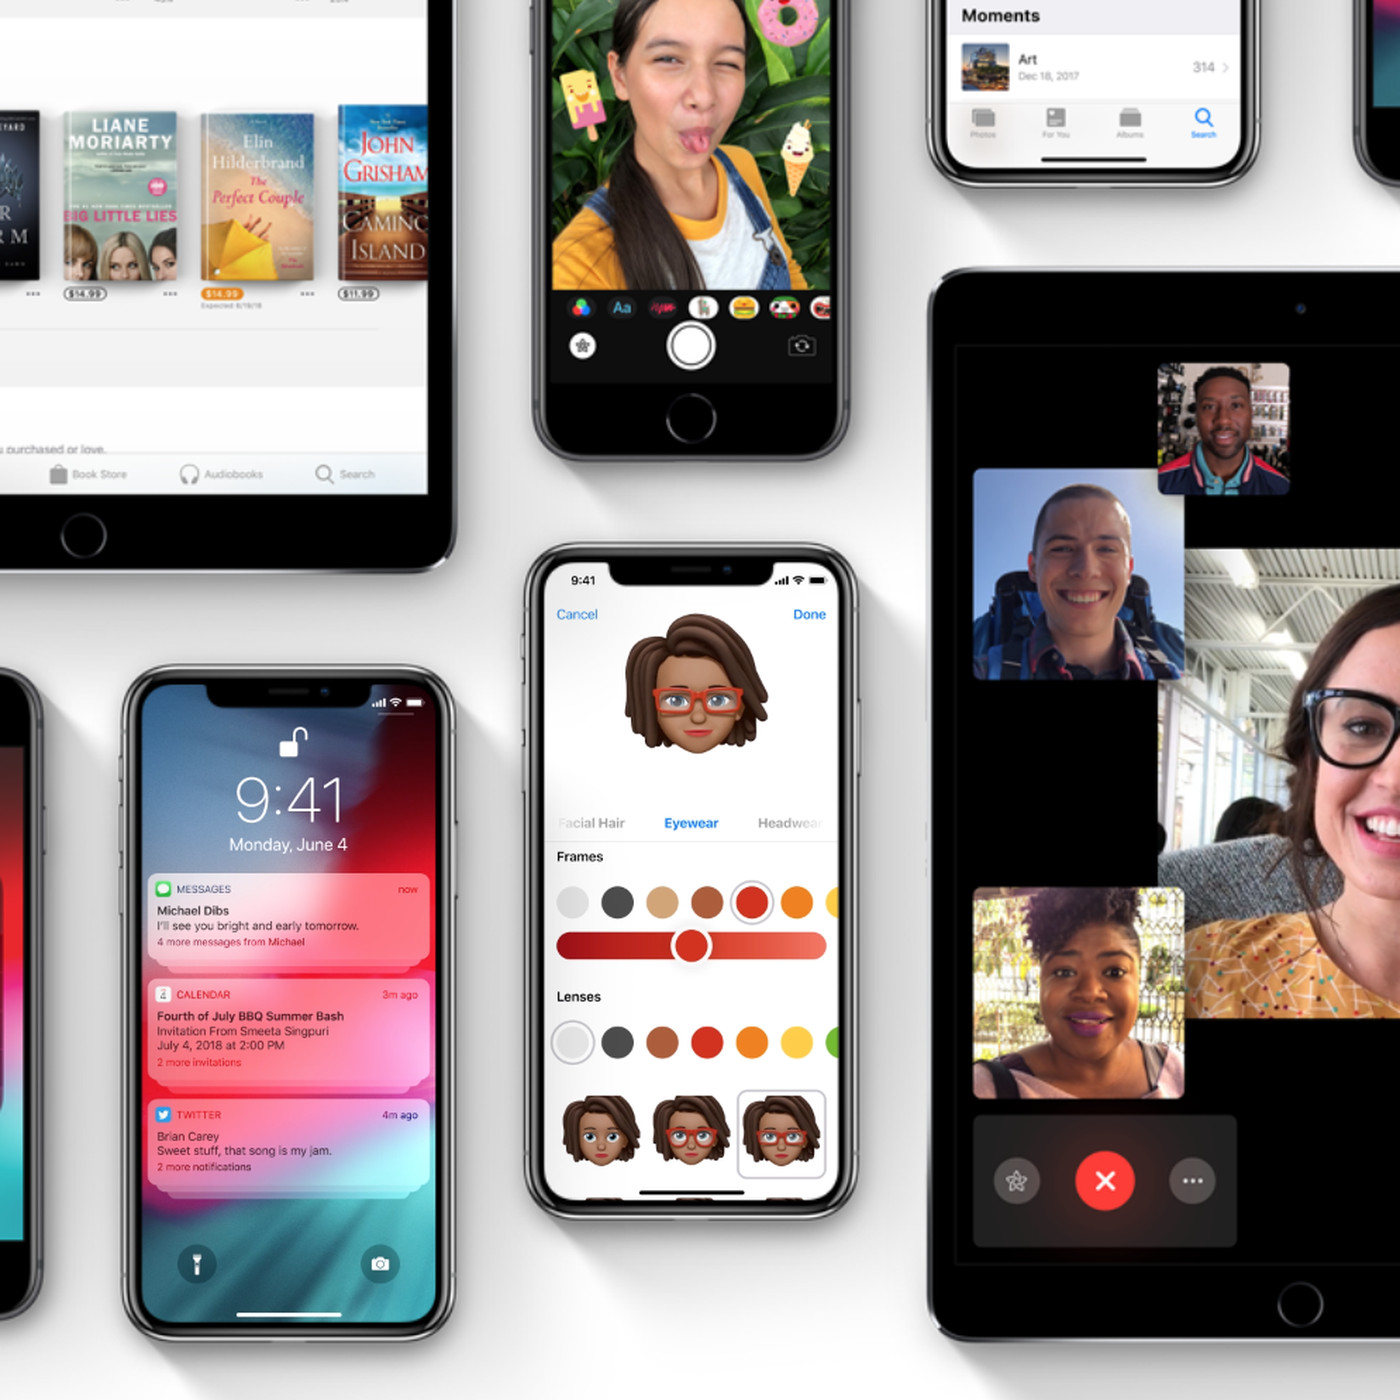 You can now download iOS 12's public beta - The Verge